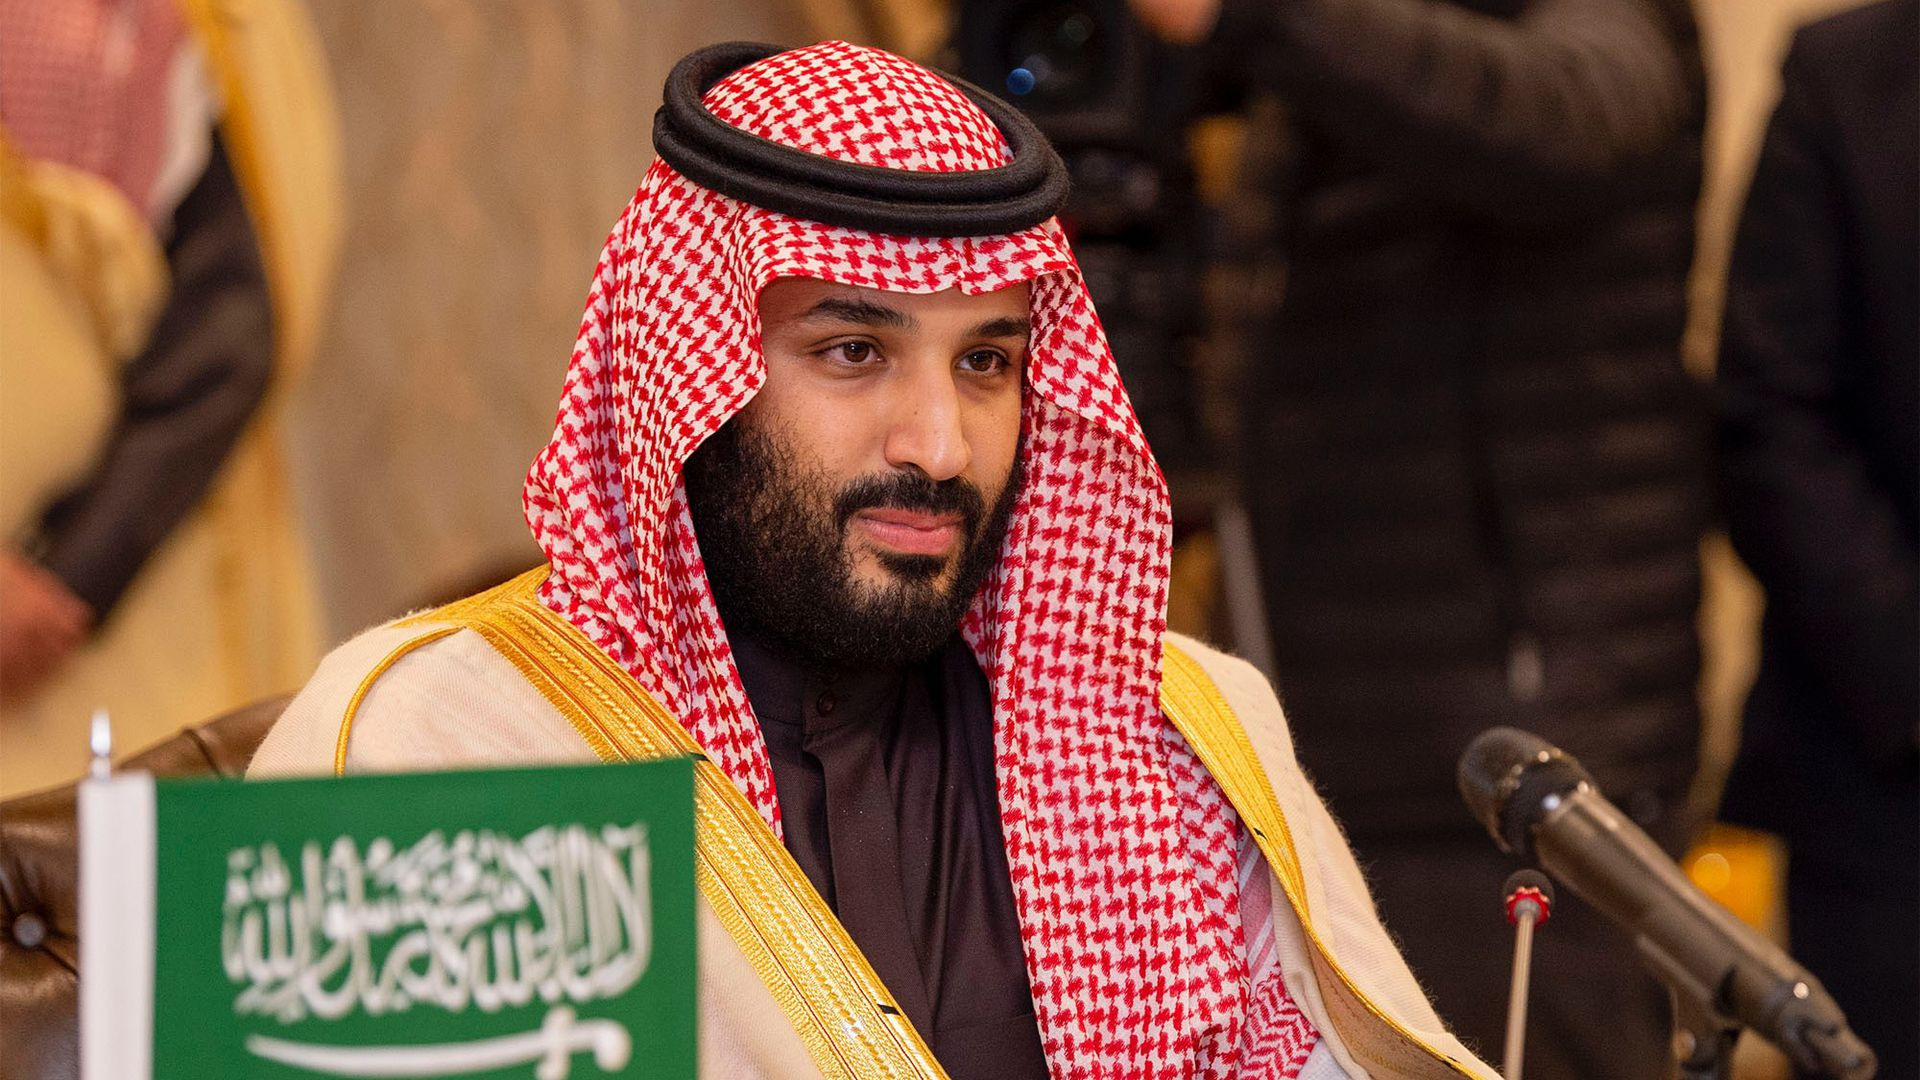 In this image, Crown Prince of Saudi Arabia Mohammad bin Salman sits behind a small green and white Saudi Arabian flag.